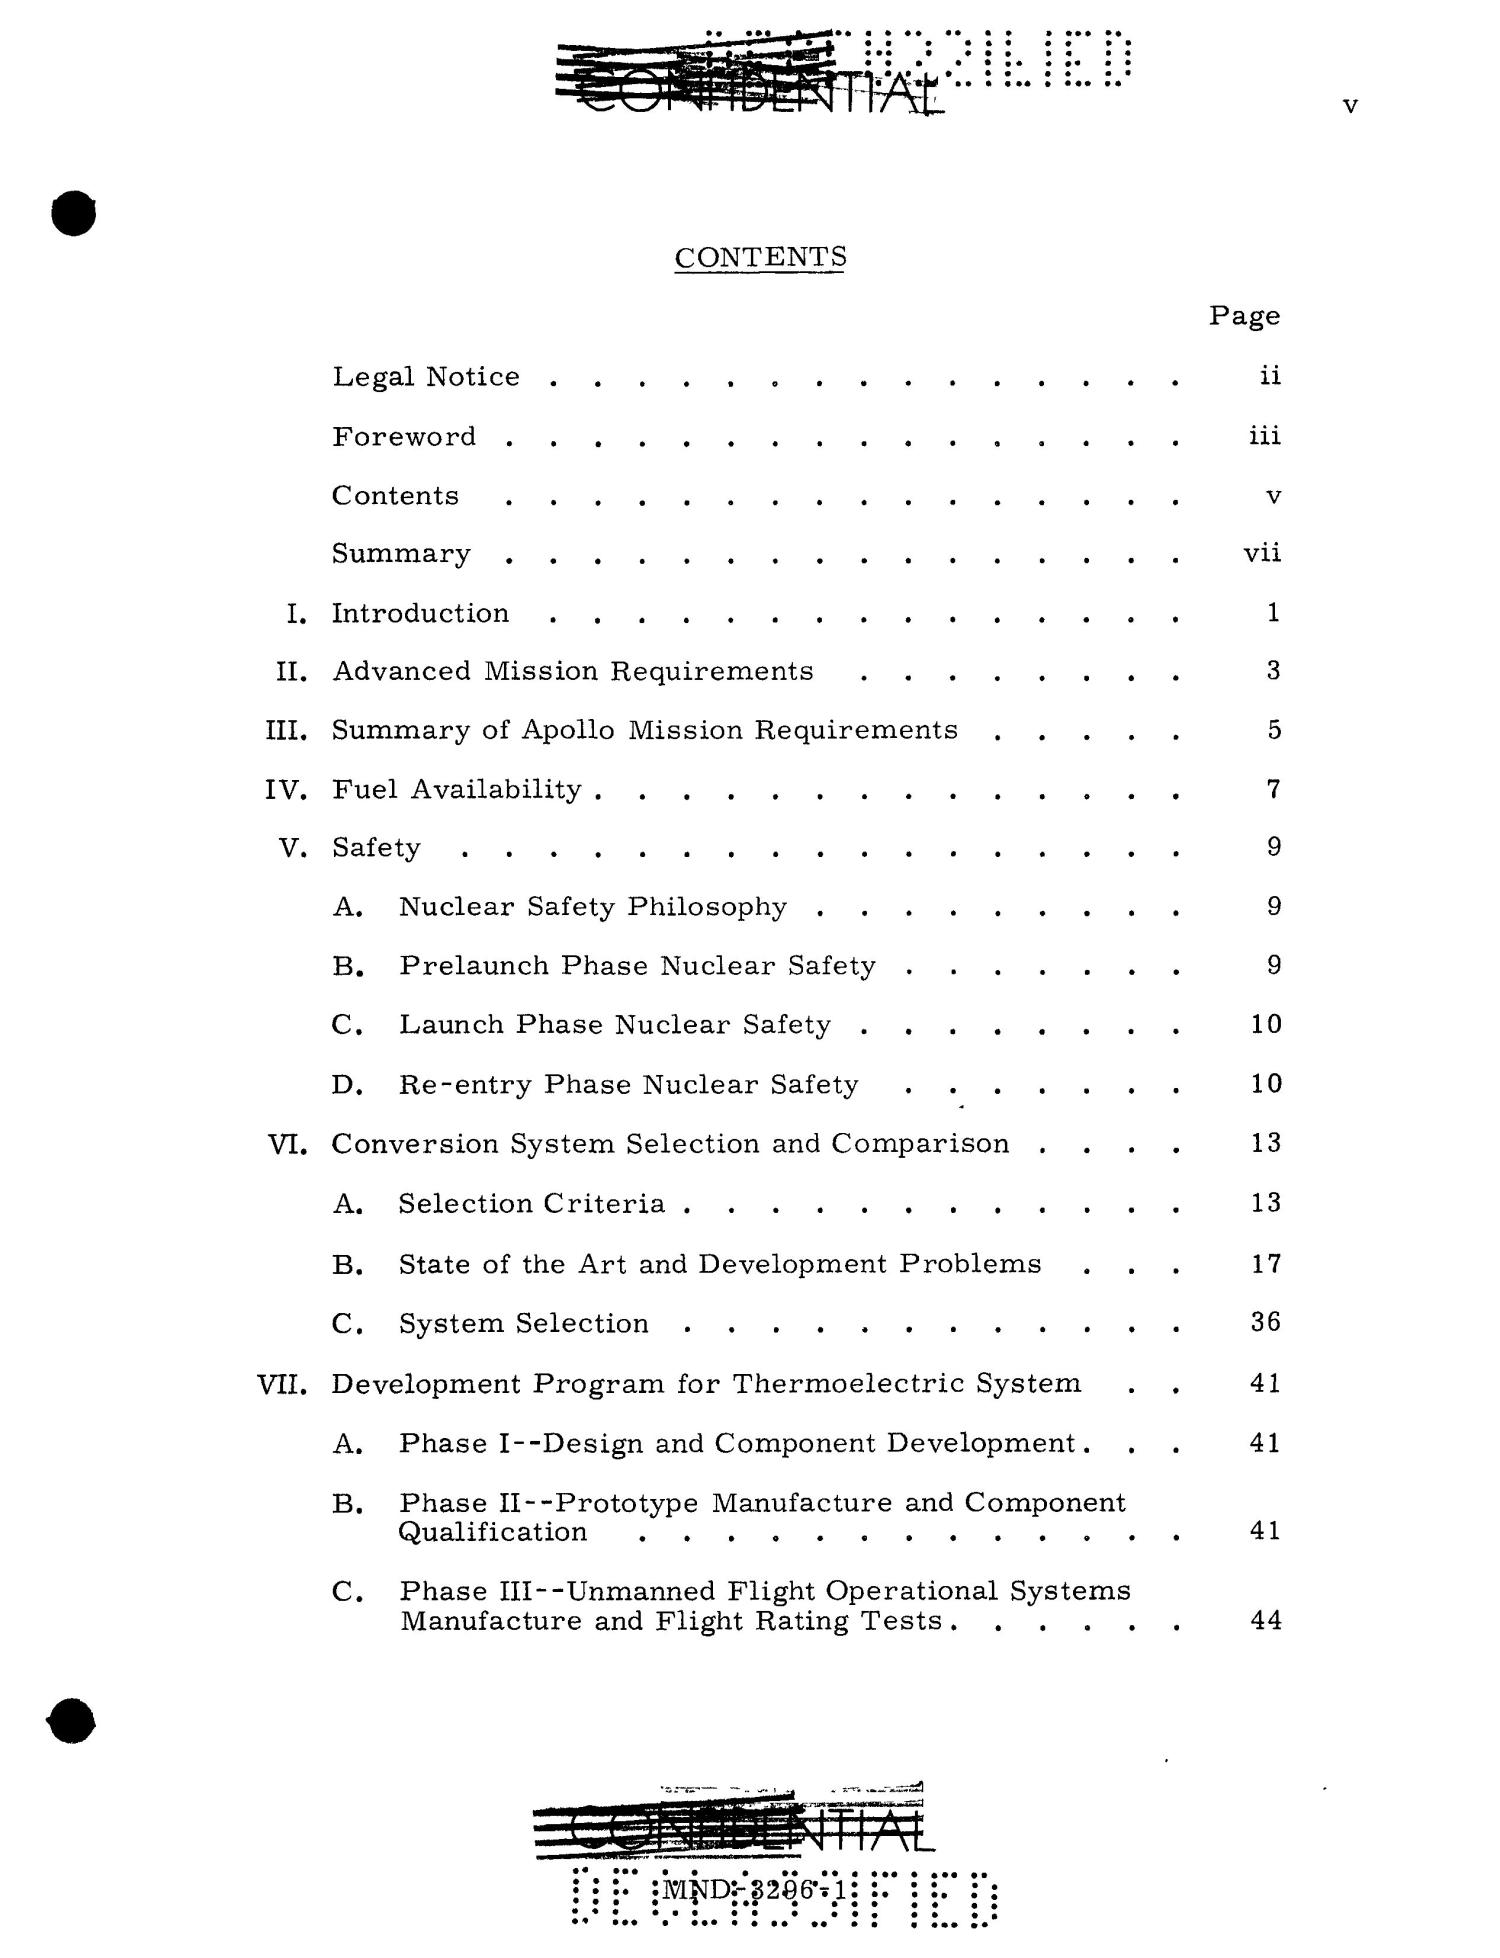 Feasibility of Isotopic Power for Manned Lunar Missions. Volume 1. Summary.                                                                                                      [Sequence #]: 8 of 61